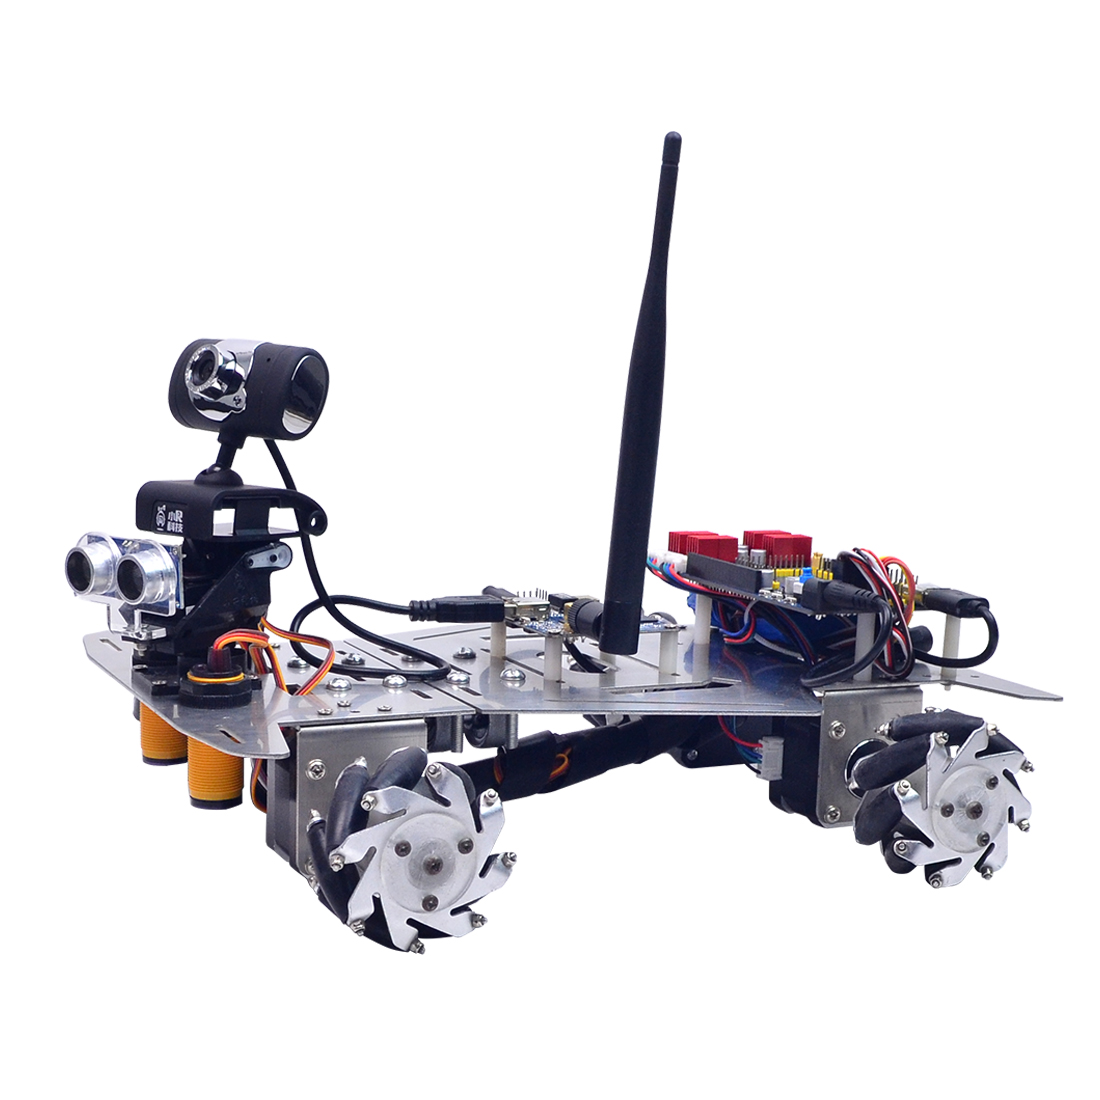 New Creative XR Master Omni-directional Mecanum Wheel Programmable Robot Electronic Toy For Kids Gift - WIFI + Bluetooth Version(China)